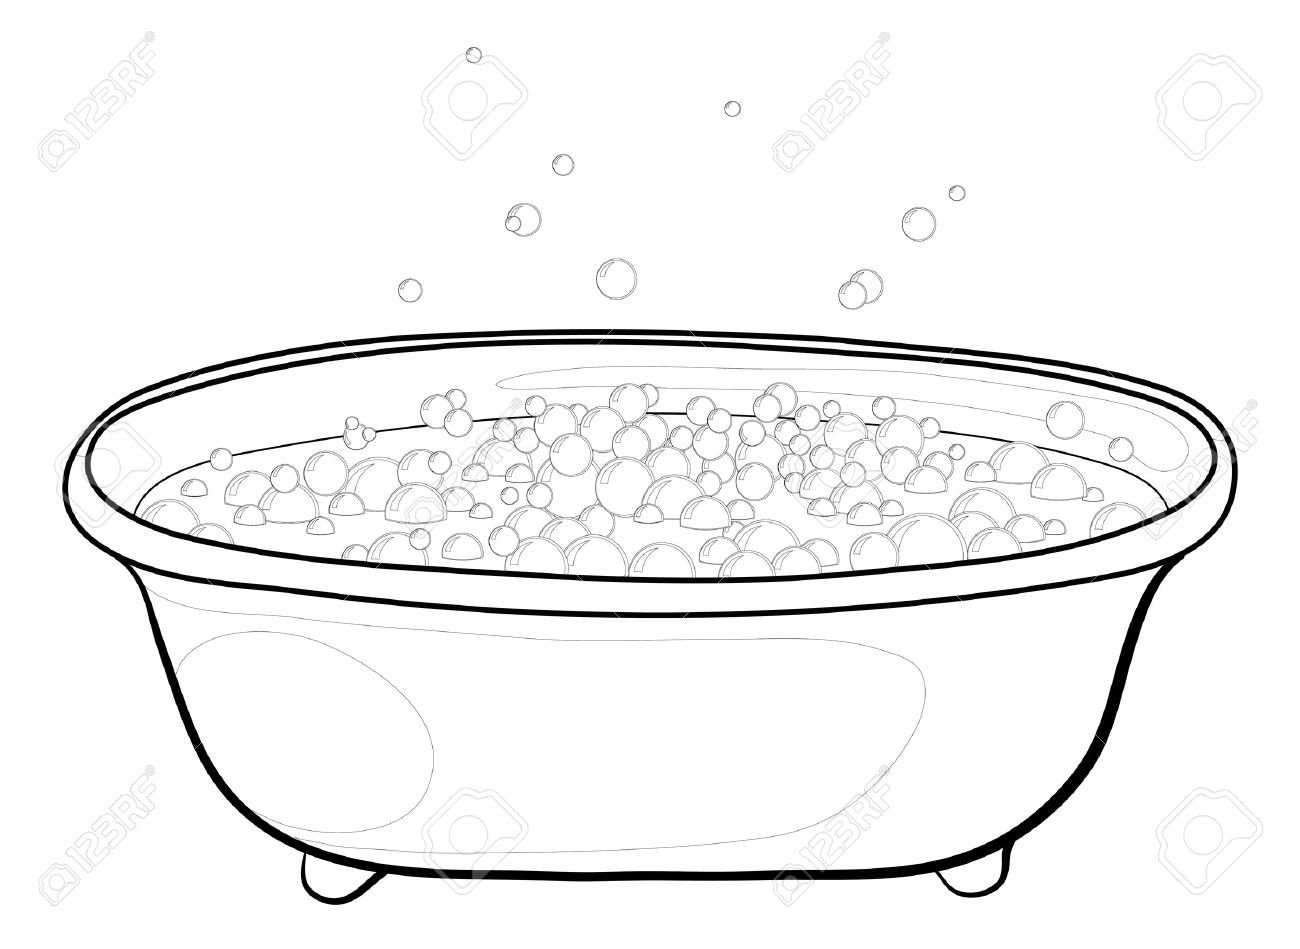 Tub Clipart Black And White 5 Clipart Station